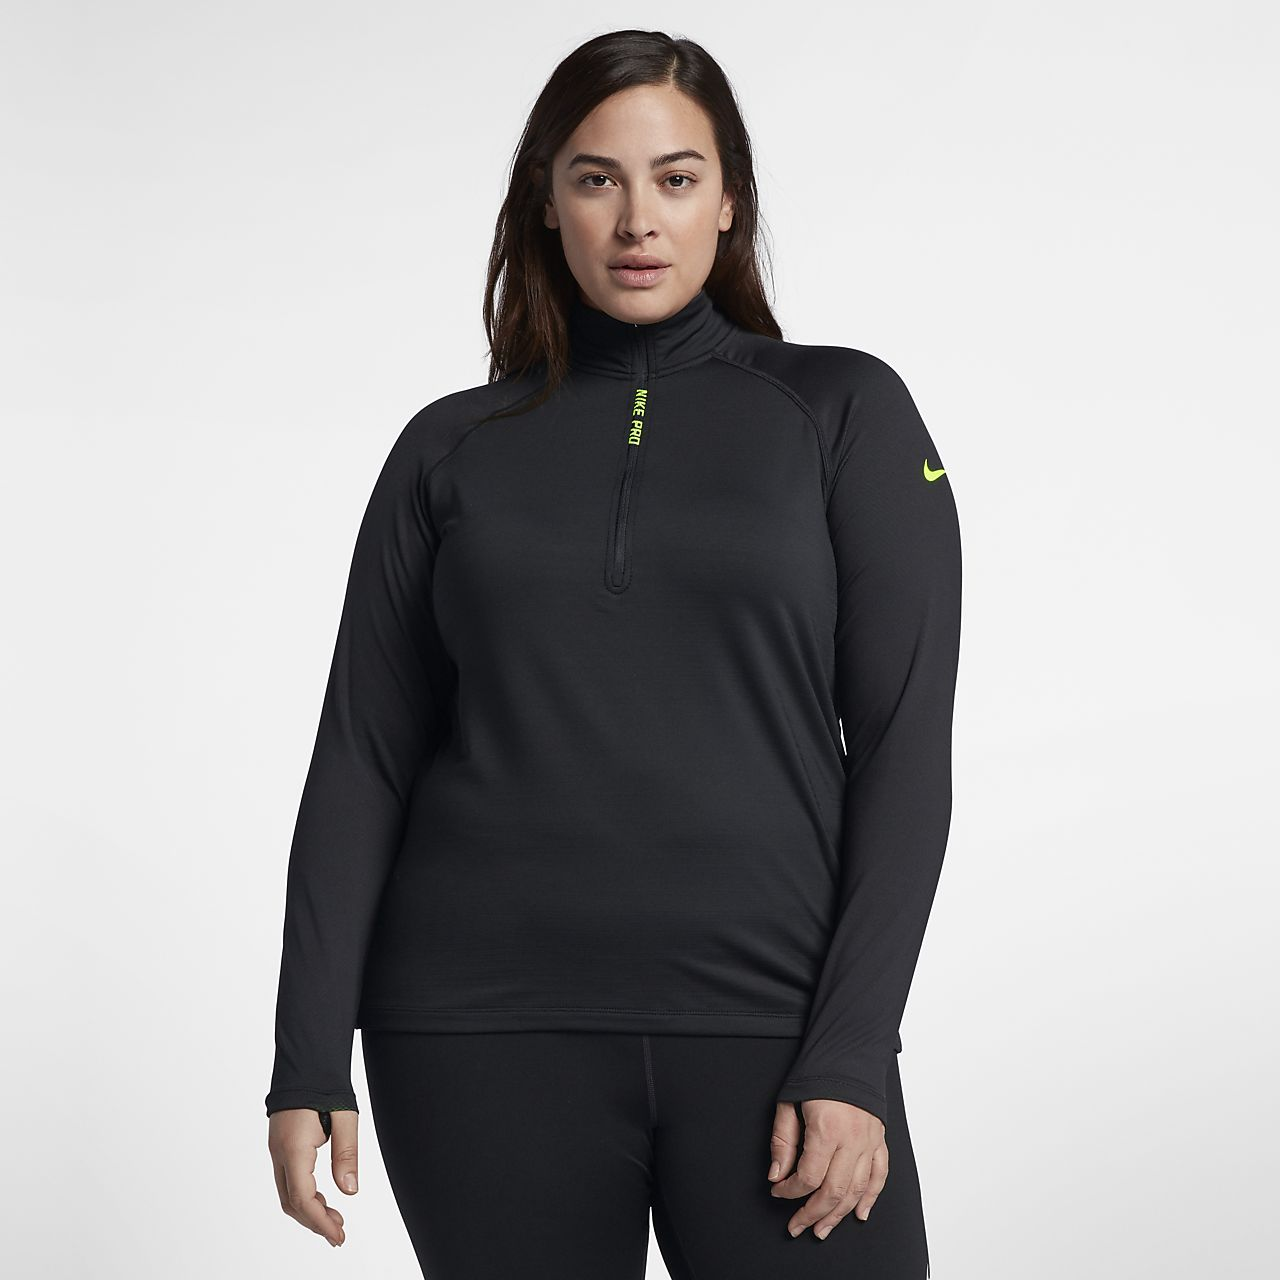 be71c6cb4c Nike Pro HyperWarm (Plus Size) Women s Long-Sleeve Training Top ...